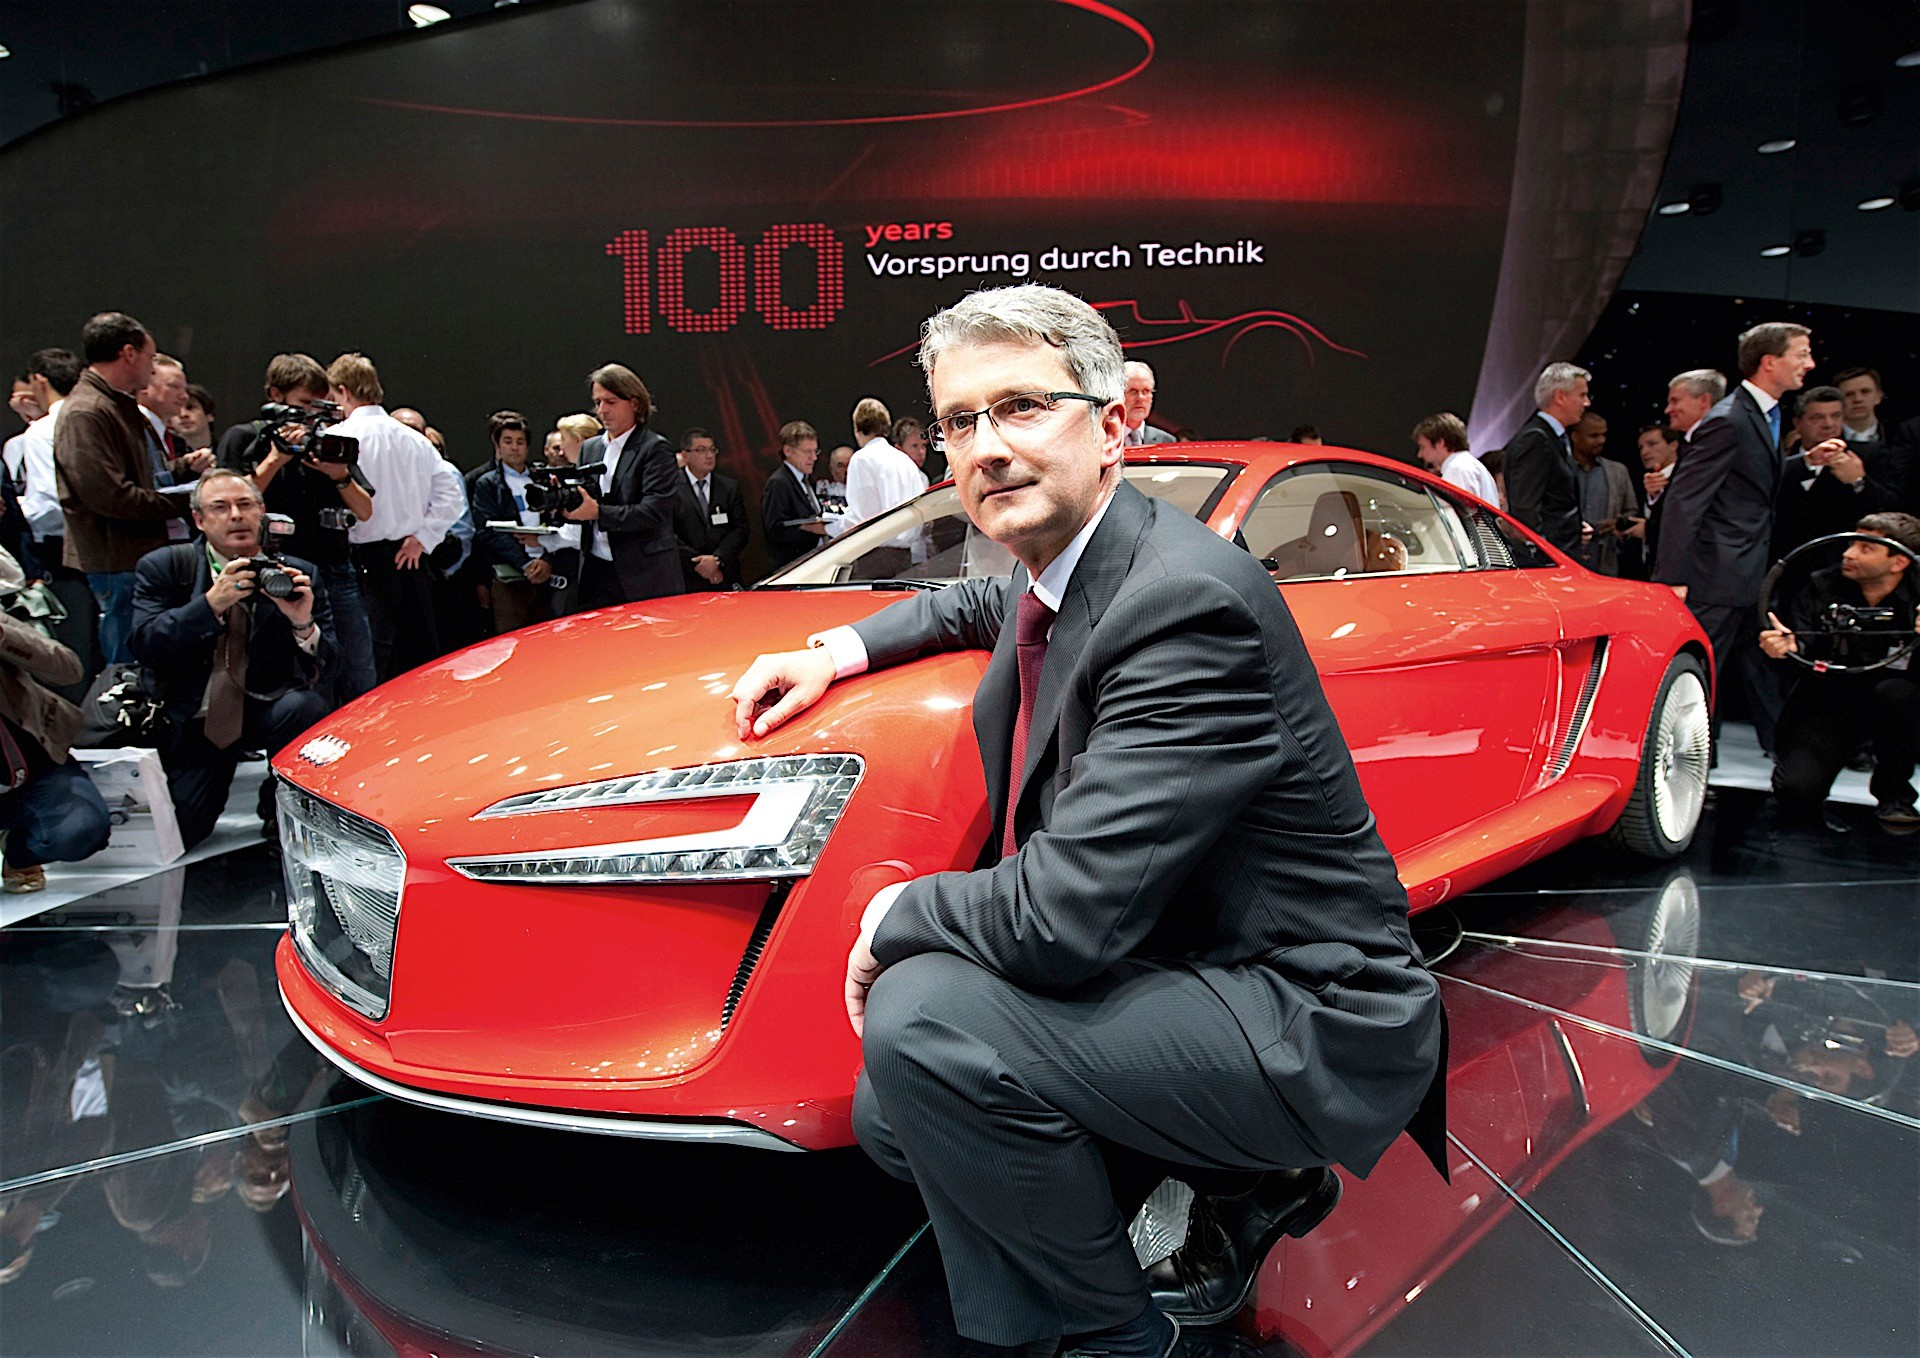 Audi CEO Rupert Stadler Had To Pay 12,500 Euro For Party Started On Company Dime - autoevolution